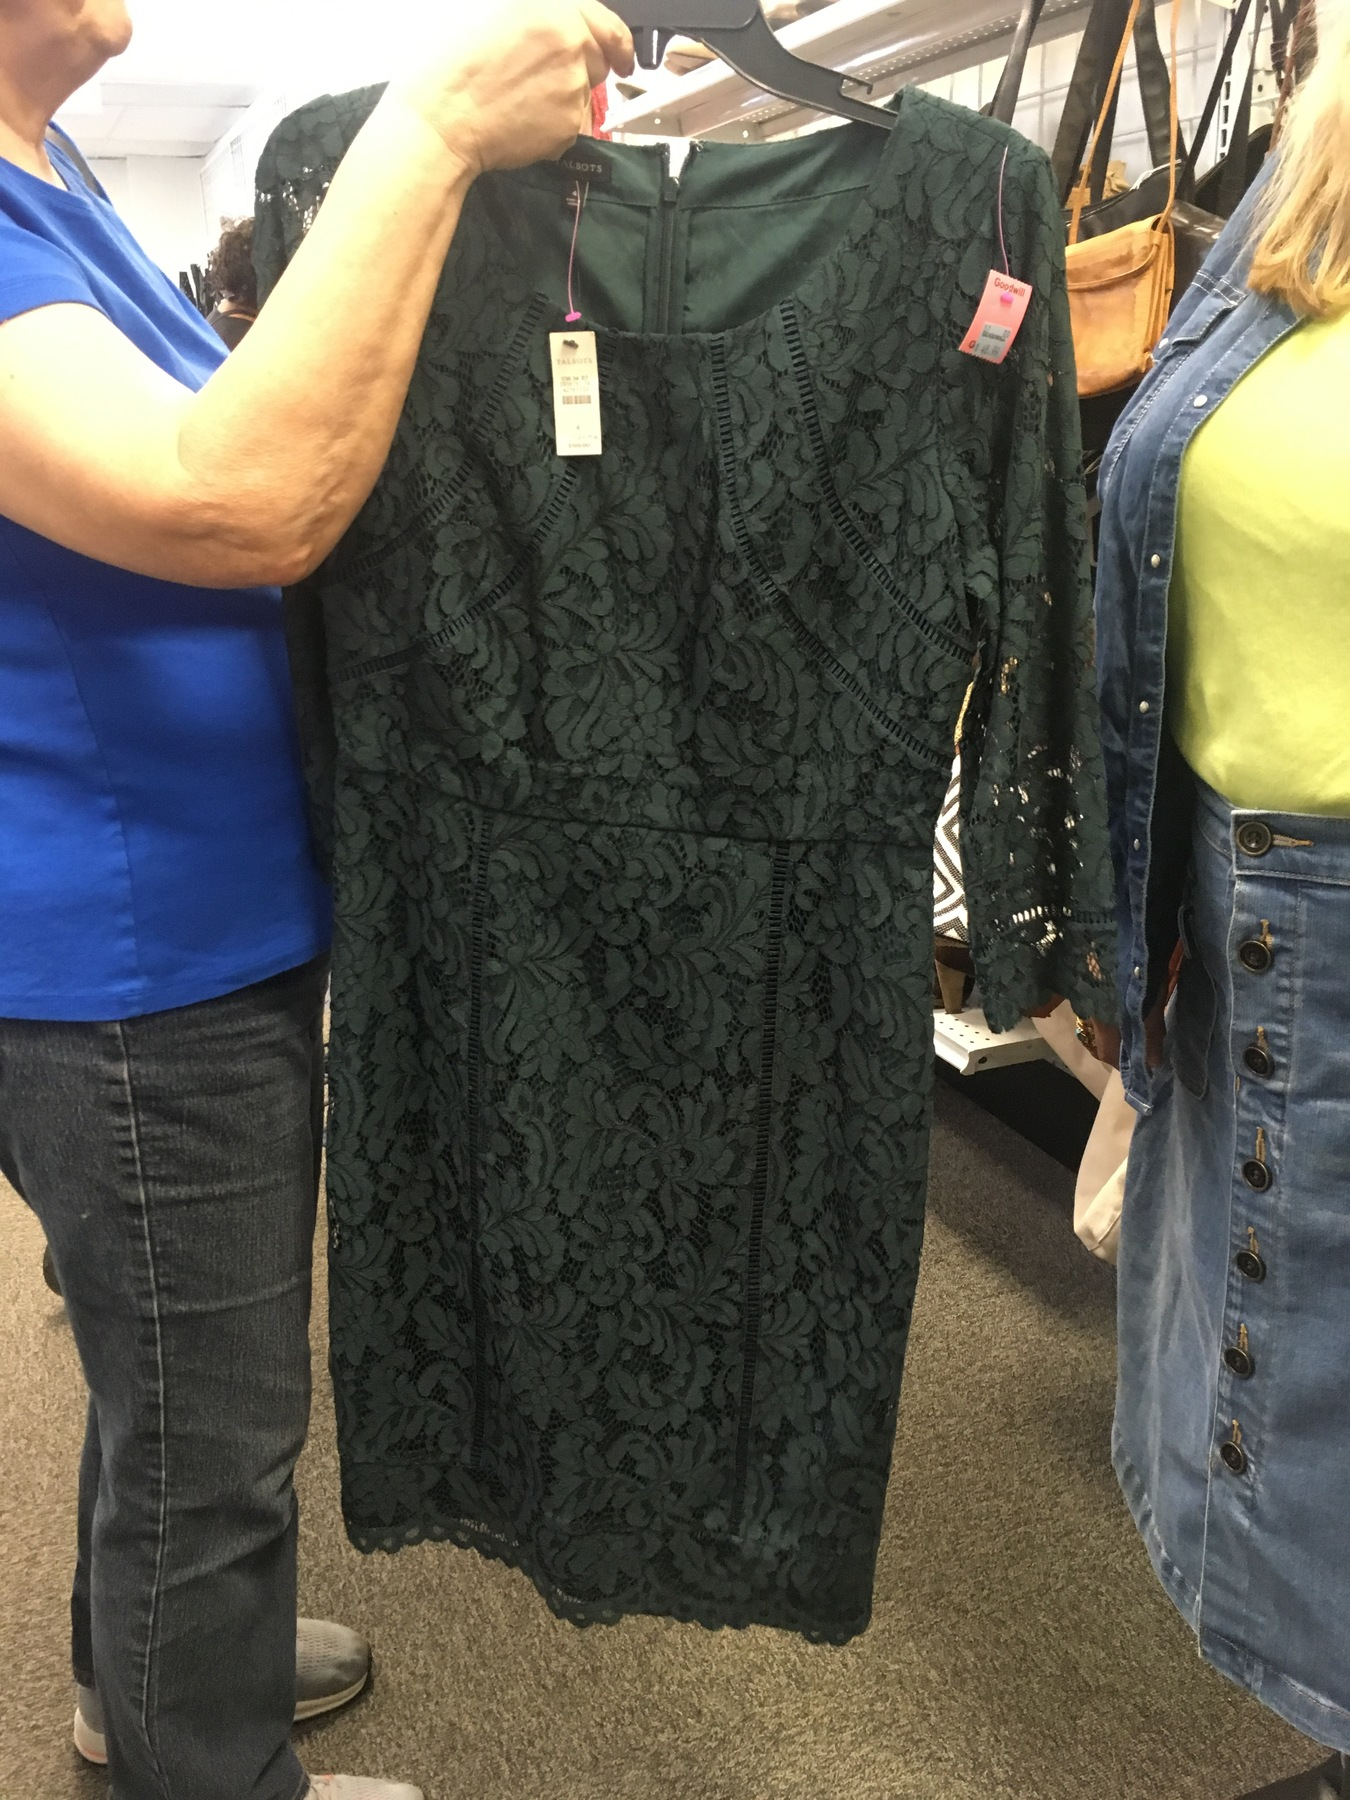 Talbots dress found at Richmond Highway Goodwill